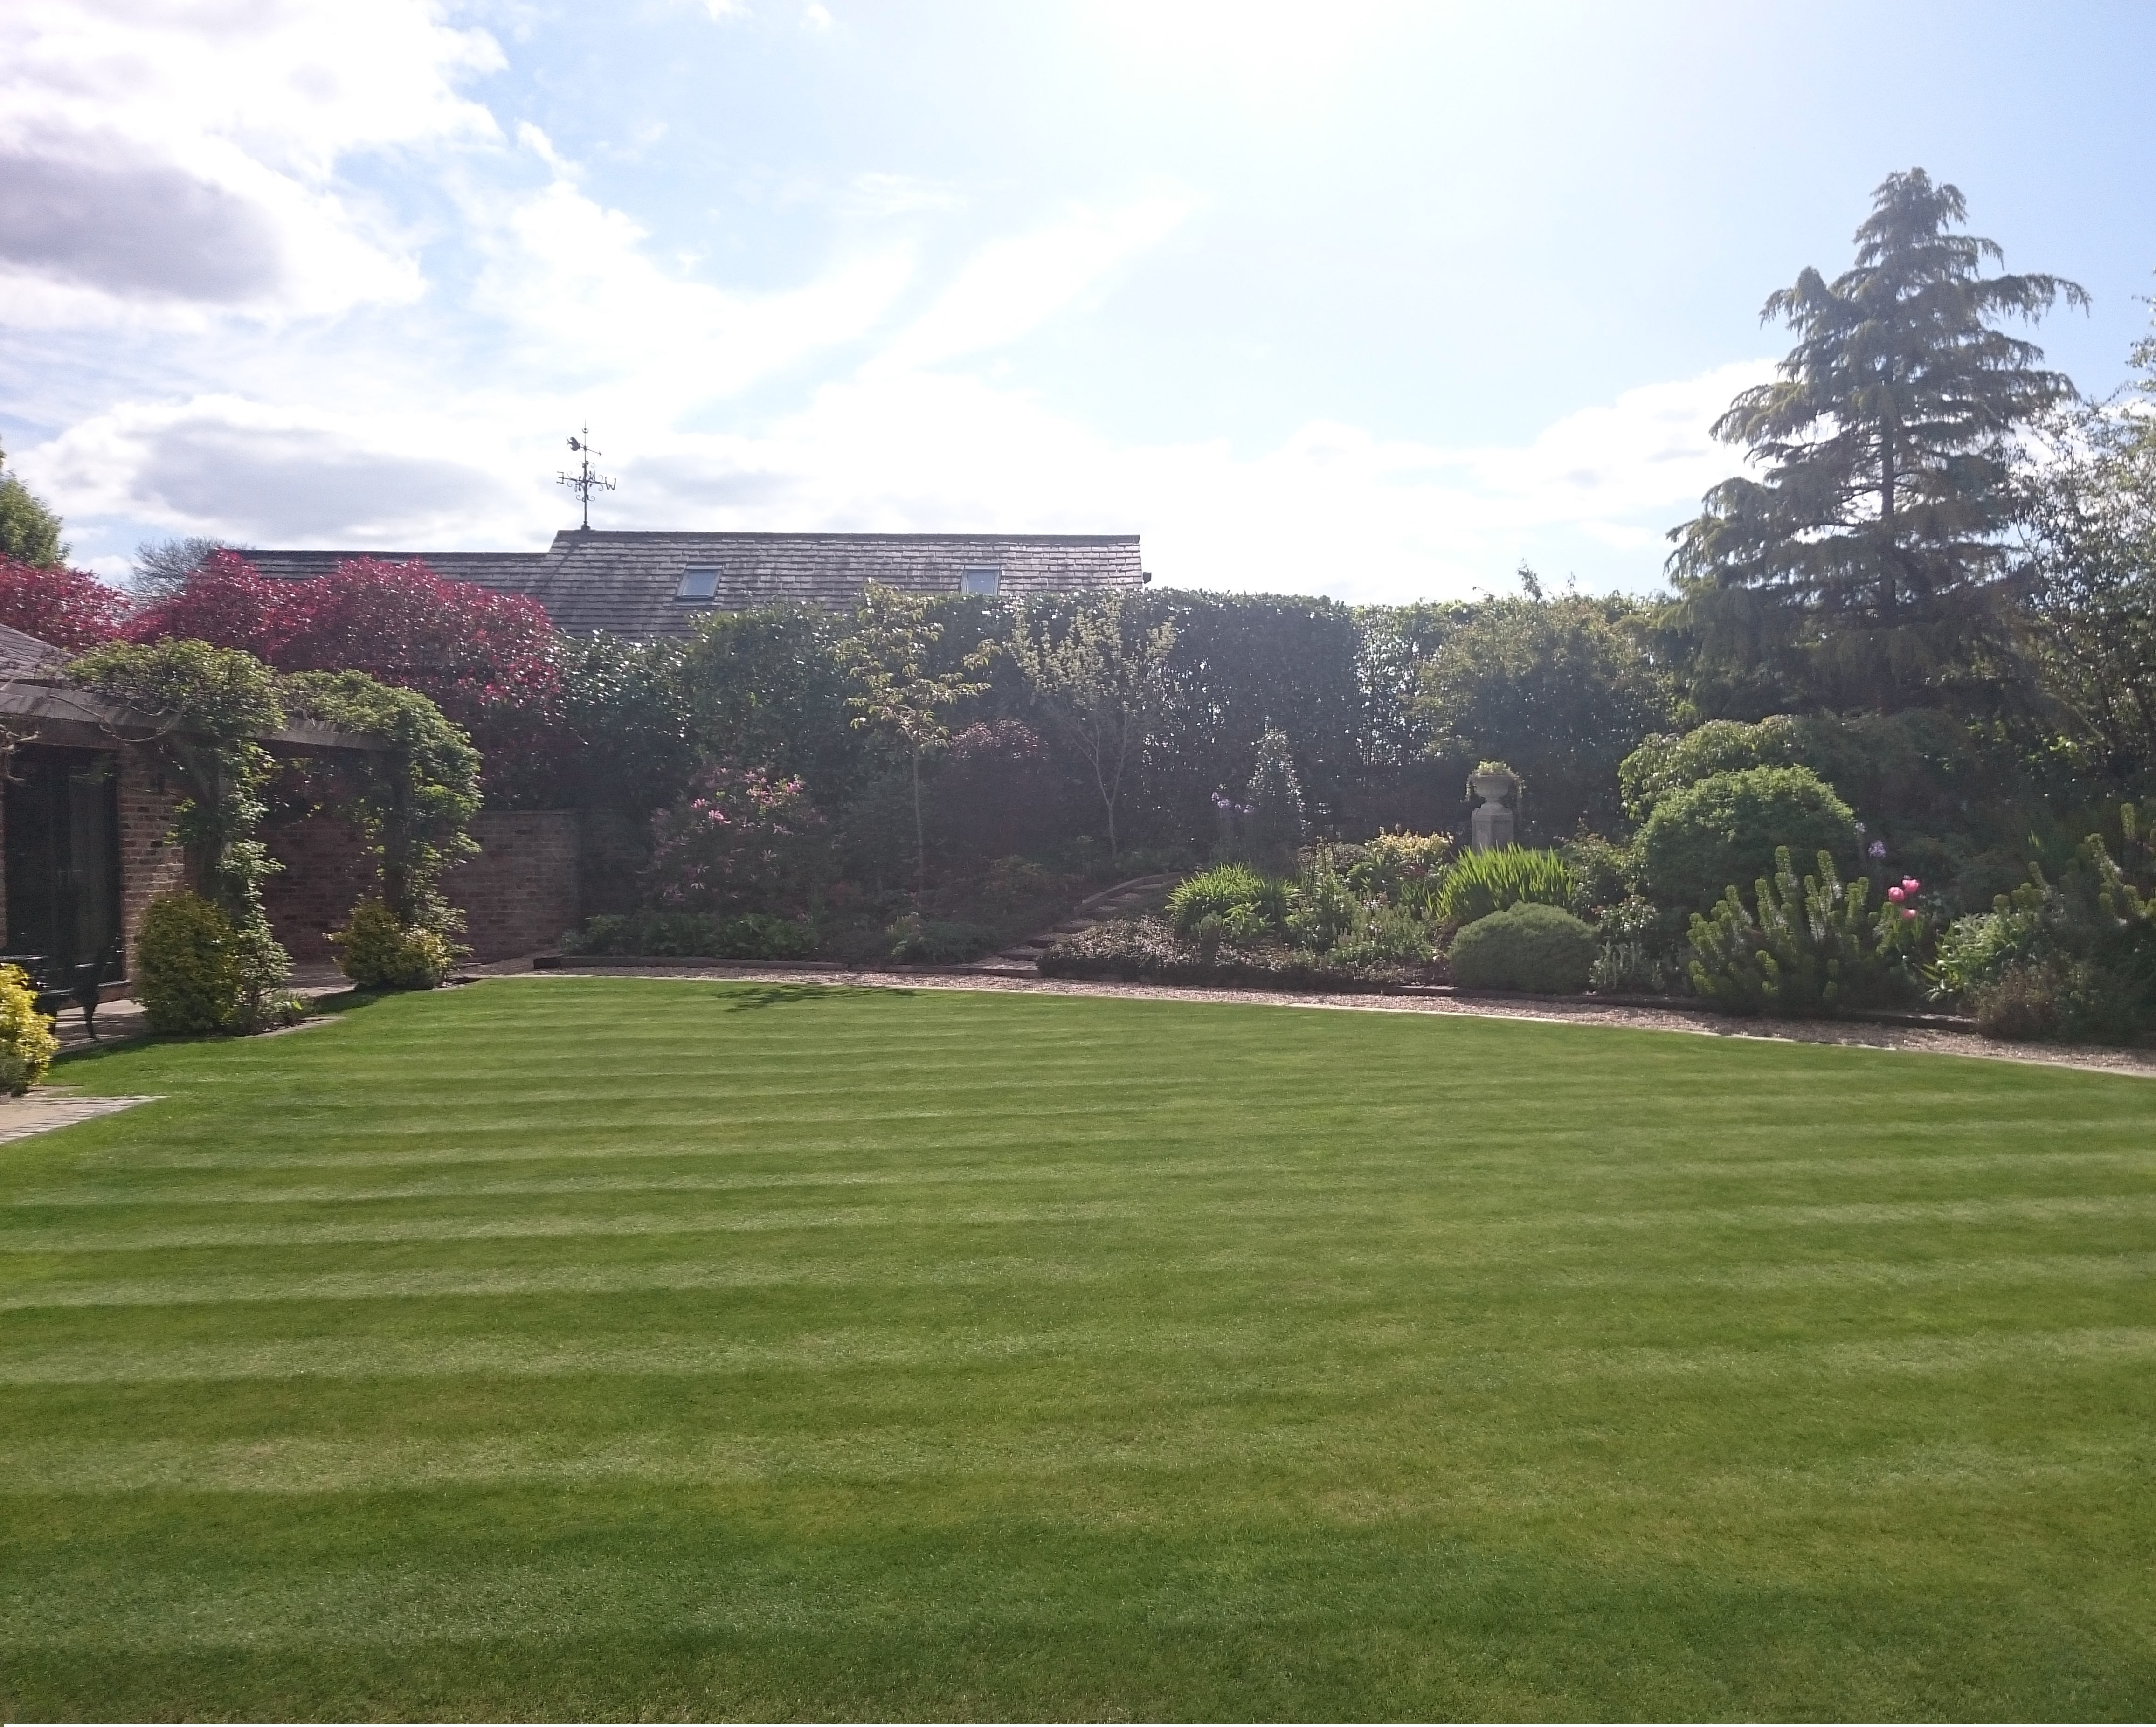 Gardeners in Cheadle, Staffordshire